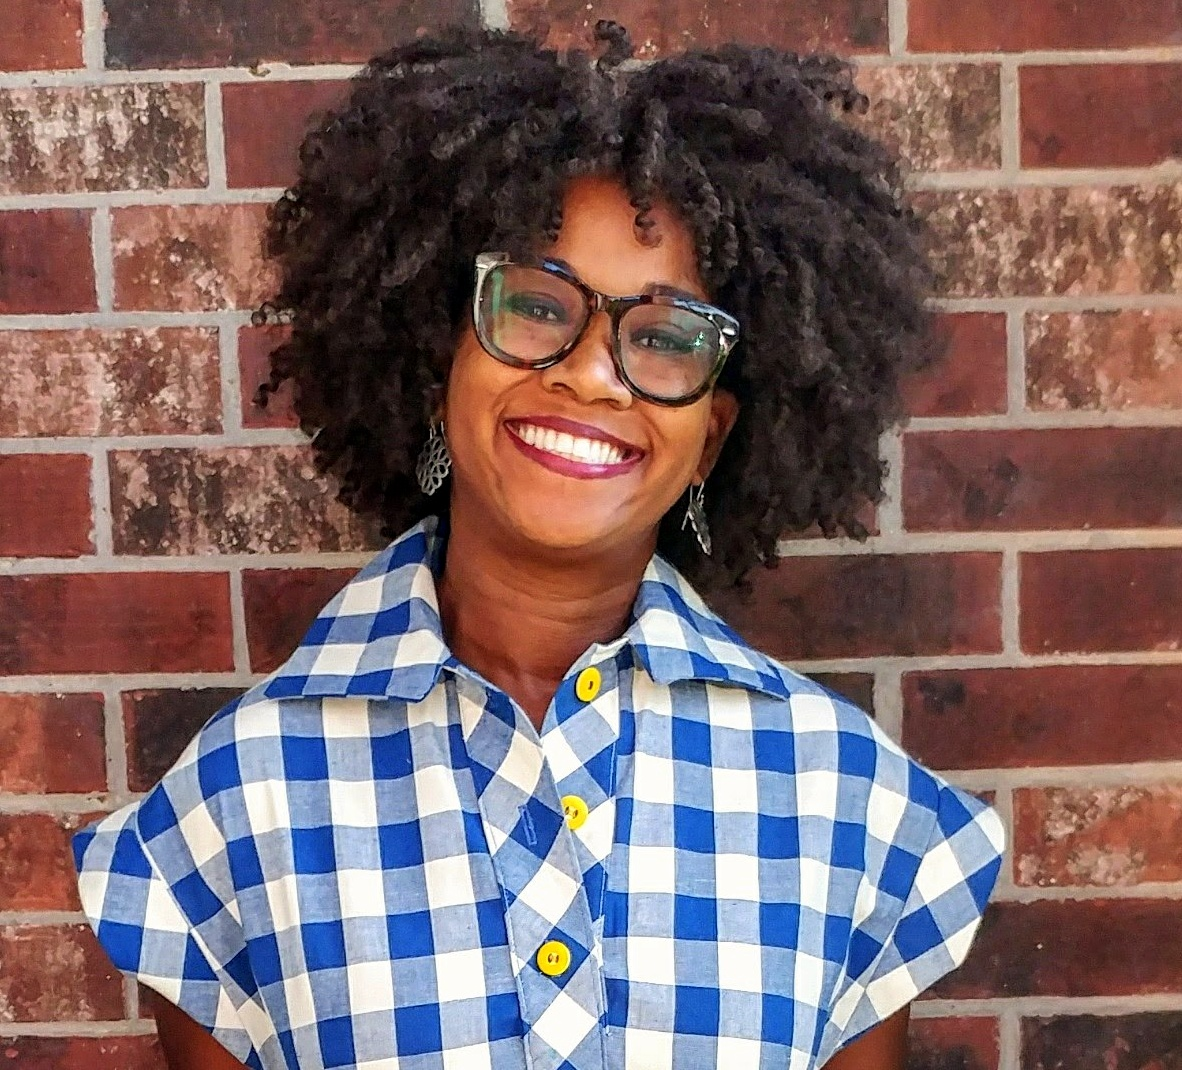 A smiling Black woman with glasses, red lipstick, and silver earrings. She has on a collared top or dress bodice that is blue and white gingham with yellow buttons.